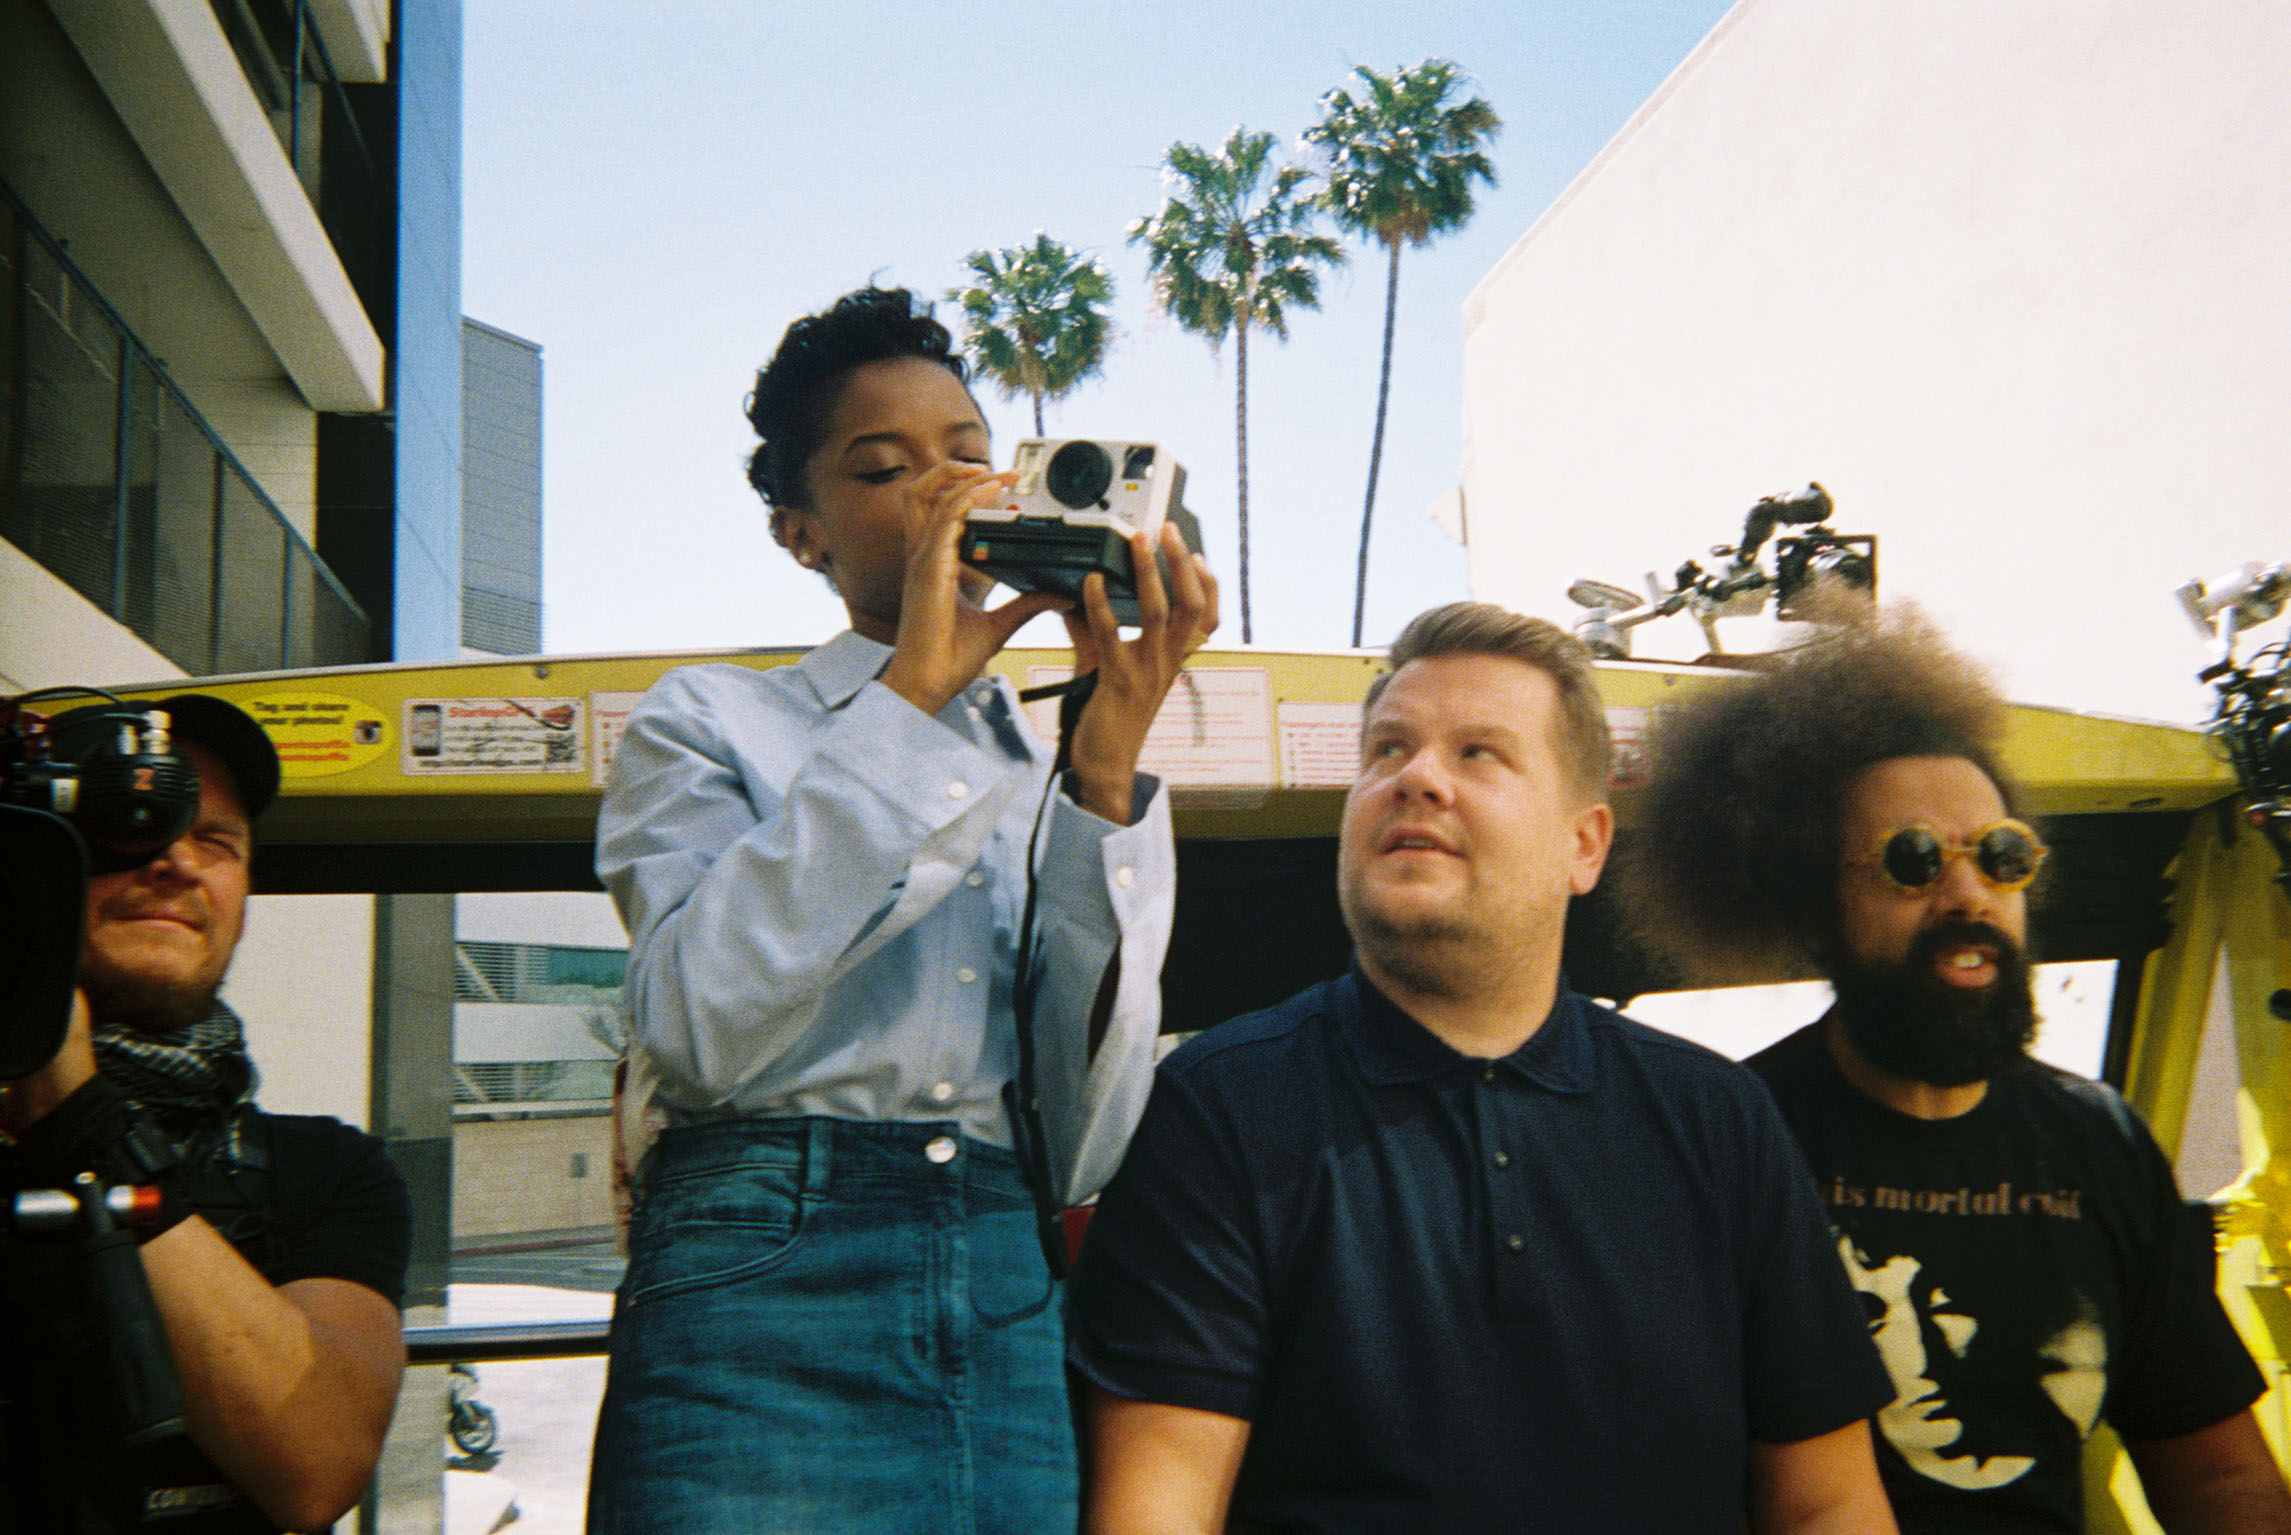 Letitia Wright, James Corden and Reggie Watts